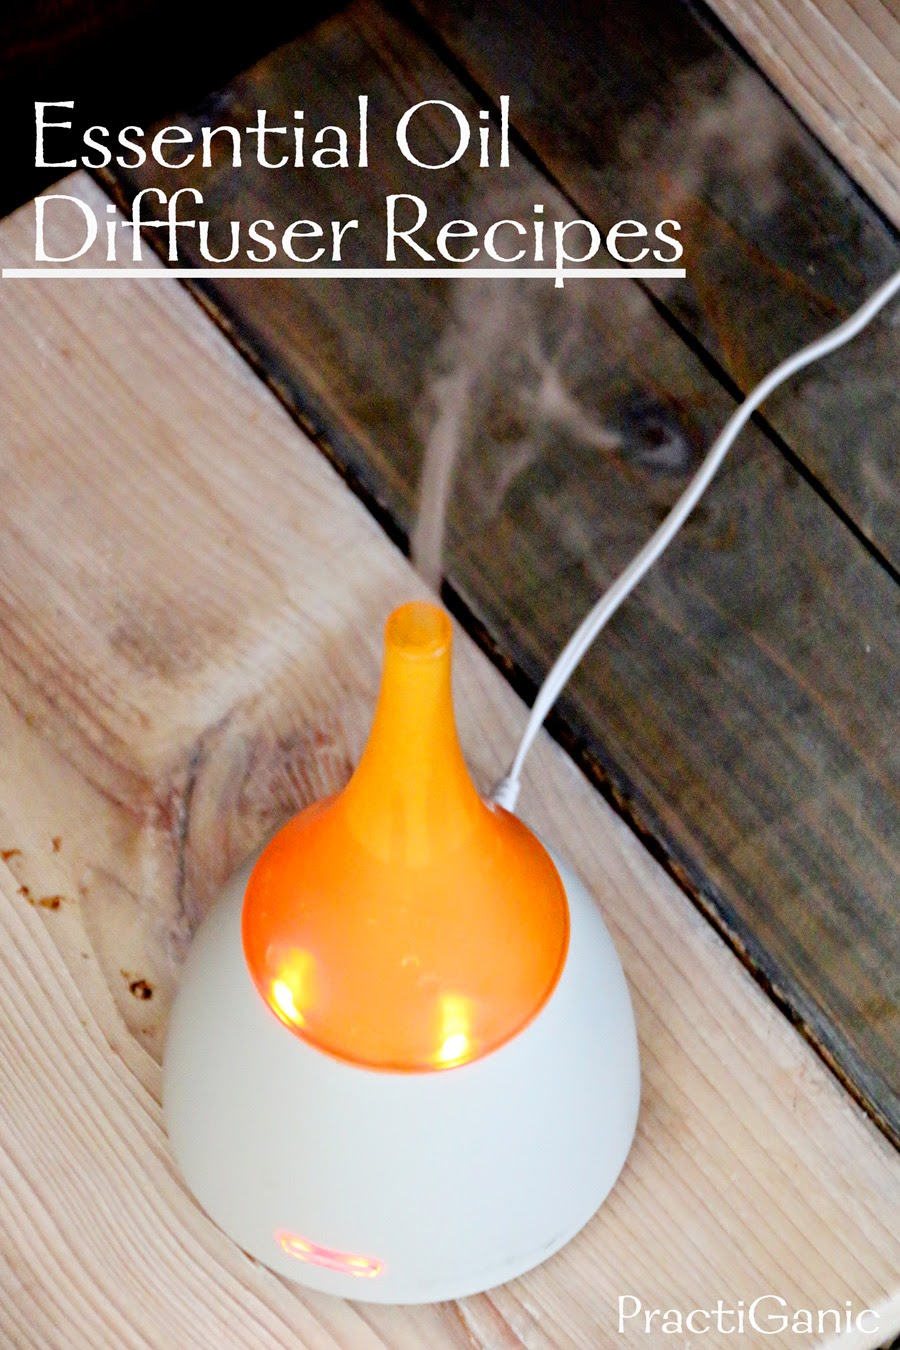 Essential Oil Diffuser Recipes for Every Mood